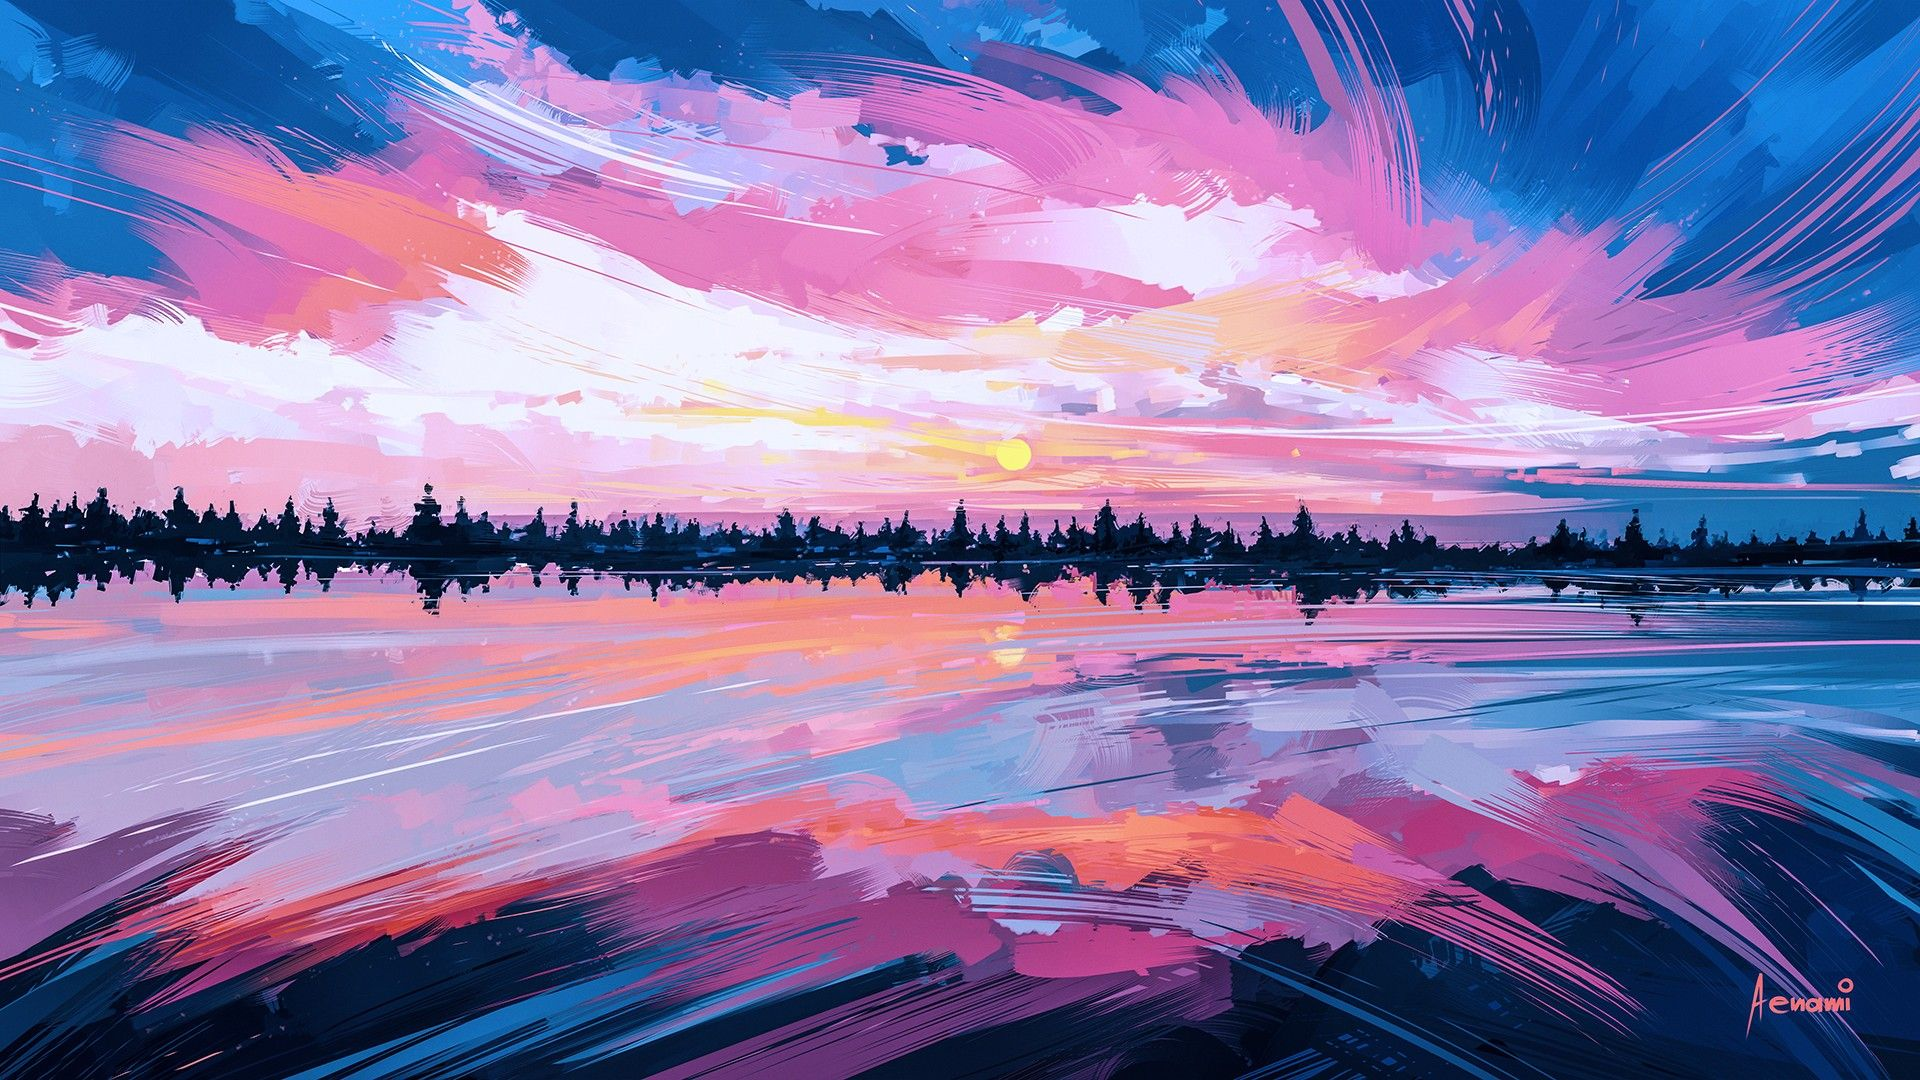 General 1920x1080 Artwork Aenami Pink Abstract Painting Art Wallpaper Artwork